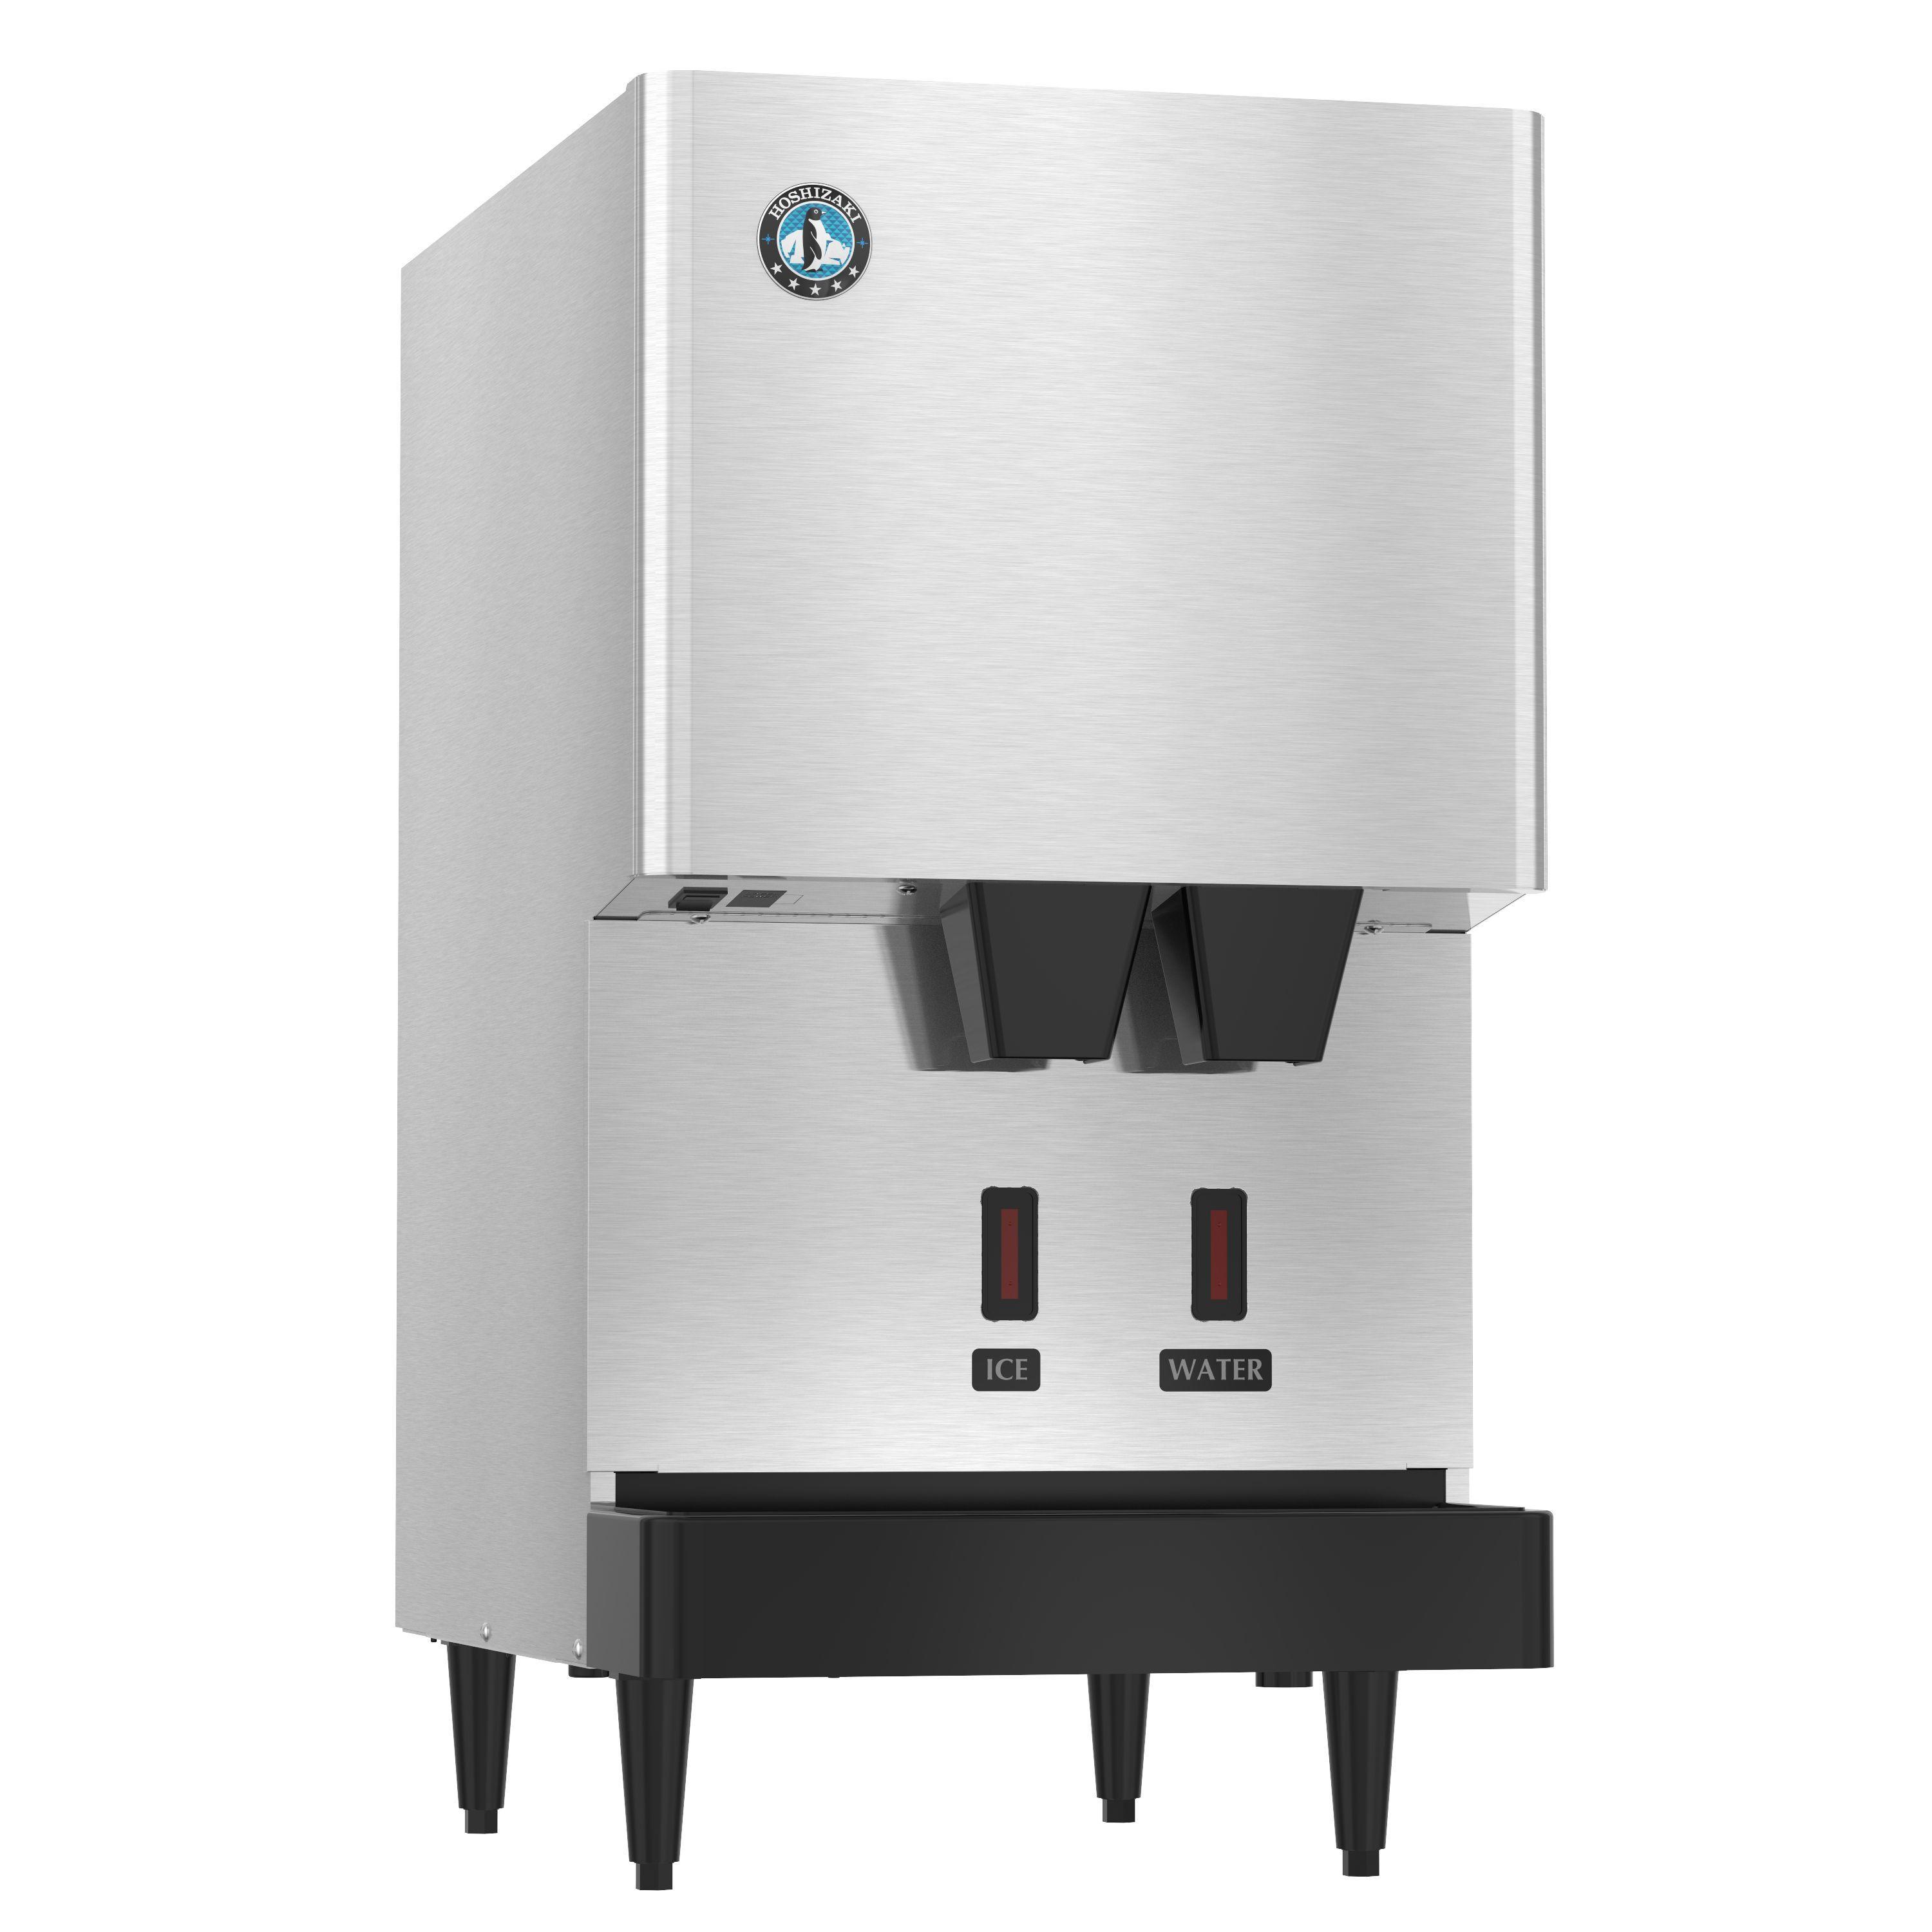 Dcm 270bah Os Cubelet Icemaker Air Cooled Hands Free Dispenser